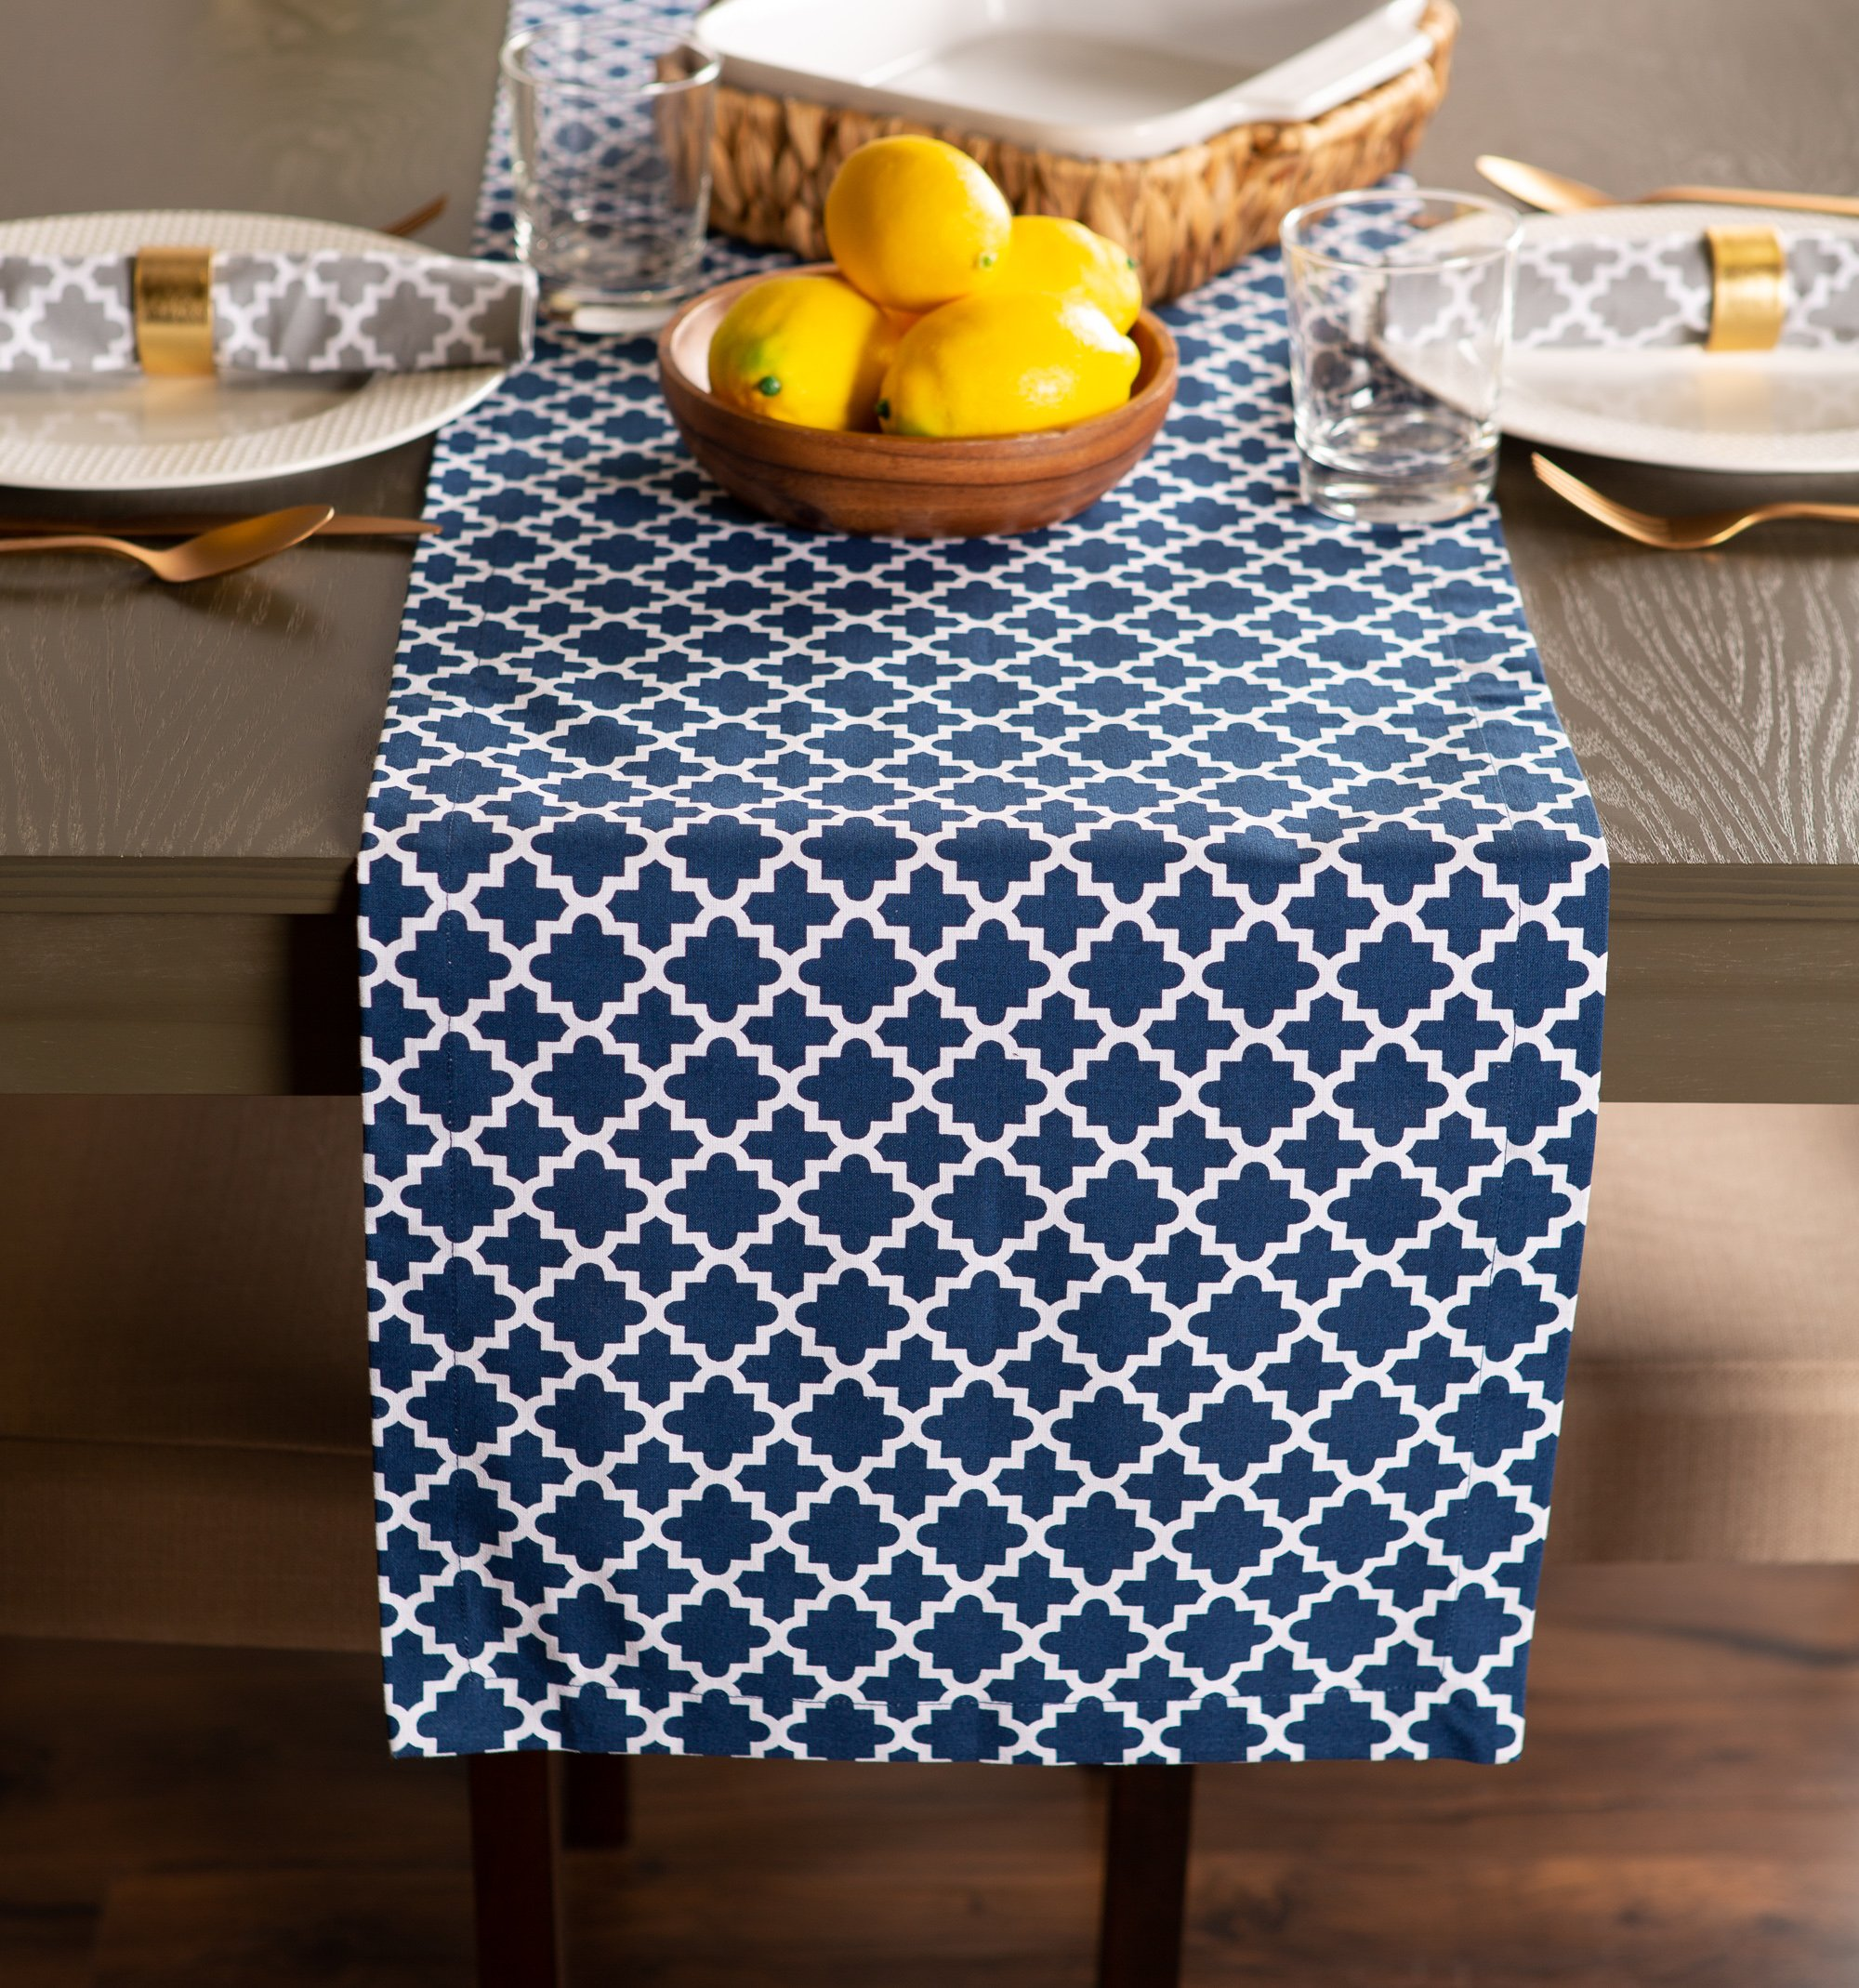 DII Lattice Cotton Table Runner for Dining Room, Foyer Table, Summer Parties and Everyday Use - 14x108'', Nautical Blue and White by DII (Image #8)